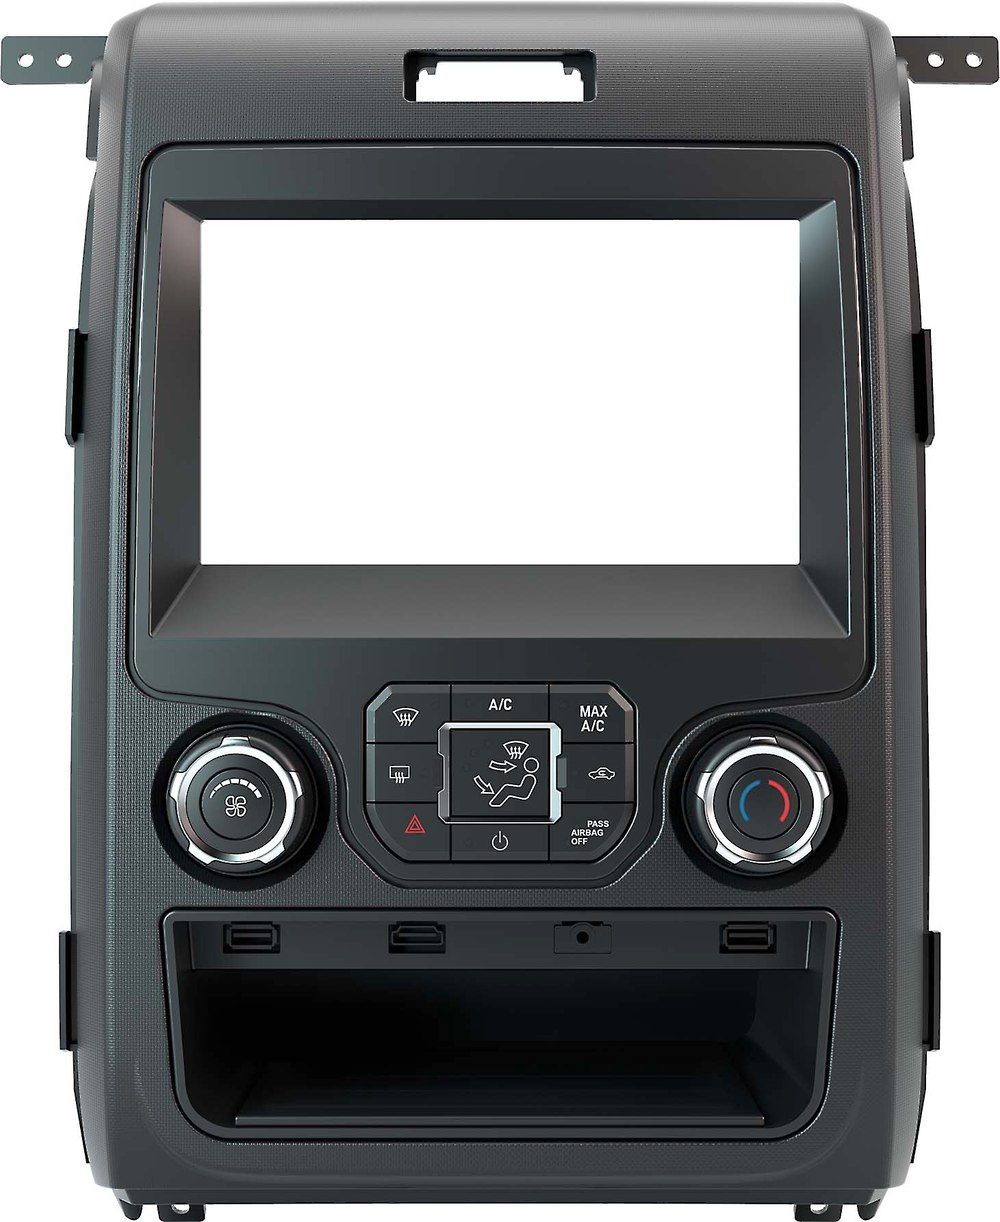 x794K150 F idatalink k150 dash kit install a new car stereo in select 2013 14 Dash Kit for F150 at cos-gaming.co